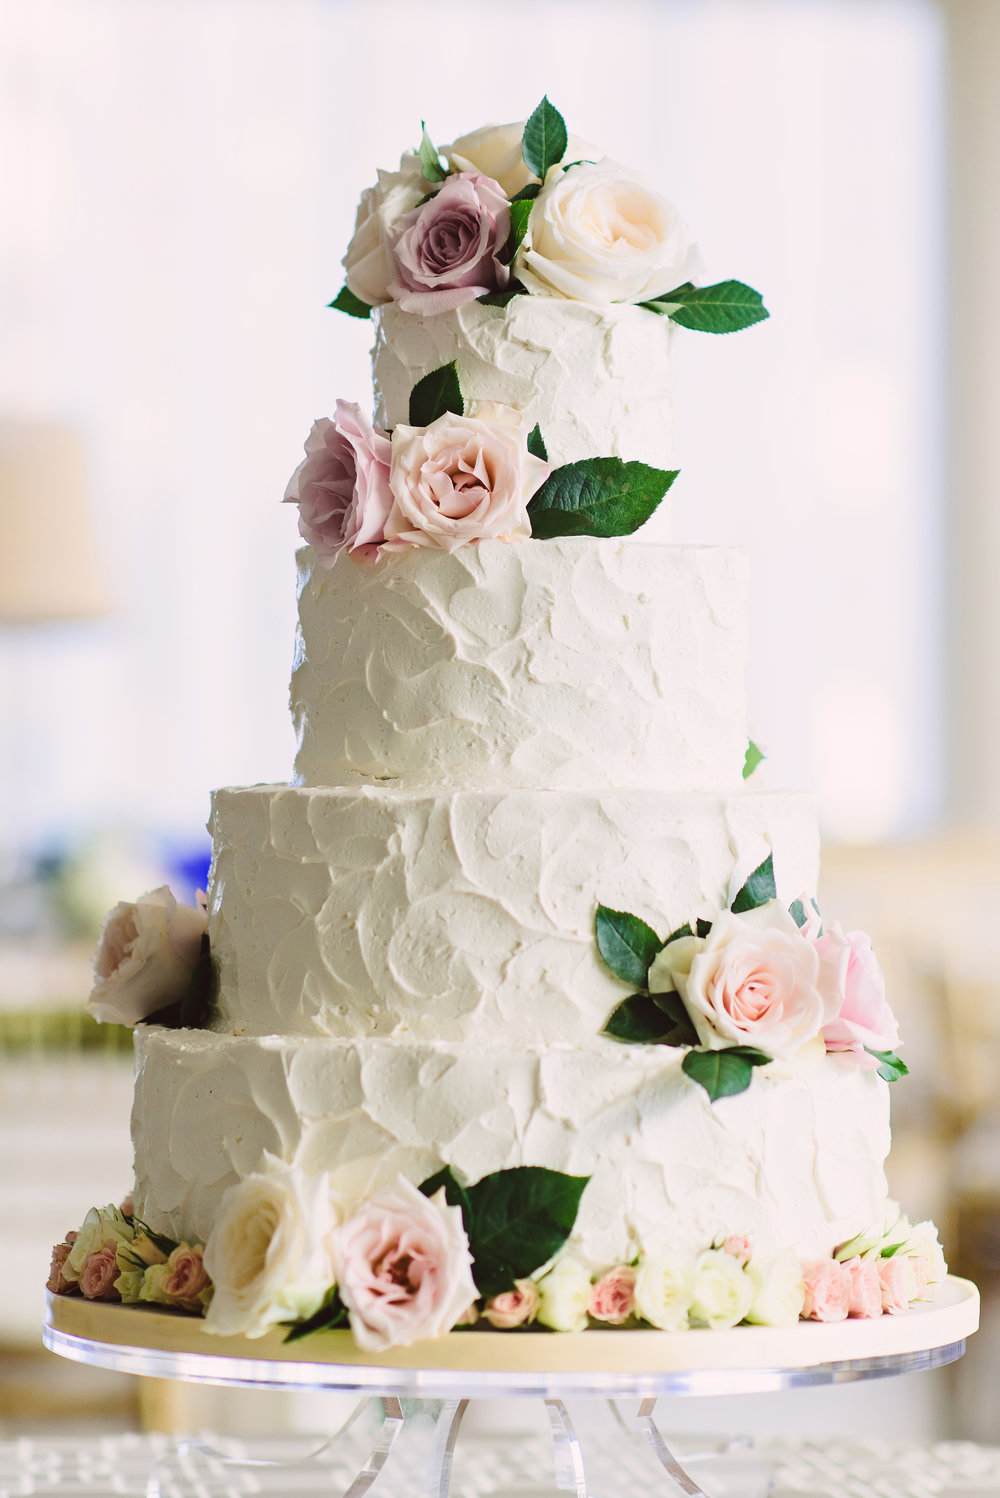 Textured wedding cake with rose and greenery clusters, Romantic wedding cake, Gorgeous wedding cake, Wow Factor Wedding Cakes, Monique Lhuillier wedding dress, Lace wedding dress, Bridal fashion, Wedding style, Wedding hair style, Bridal hair style, Half up half down hair style, Mint Museum Uptown wedding in Charlotte, North Carolina by The Graceful Host